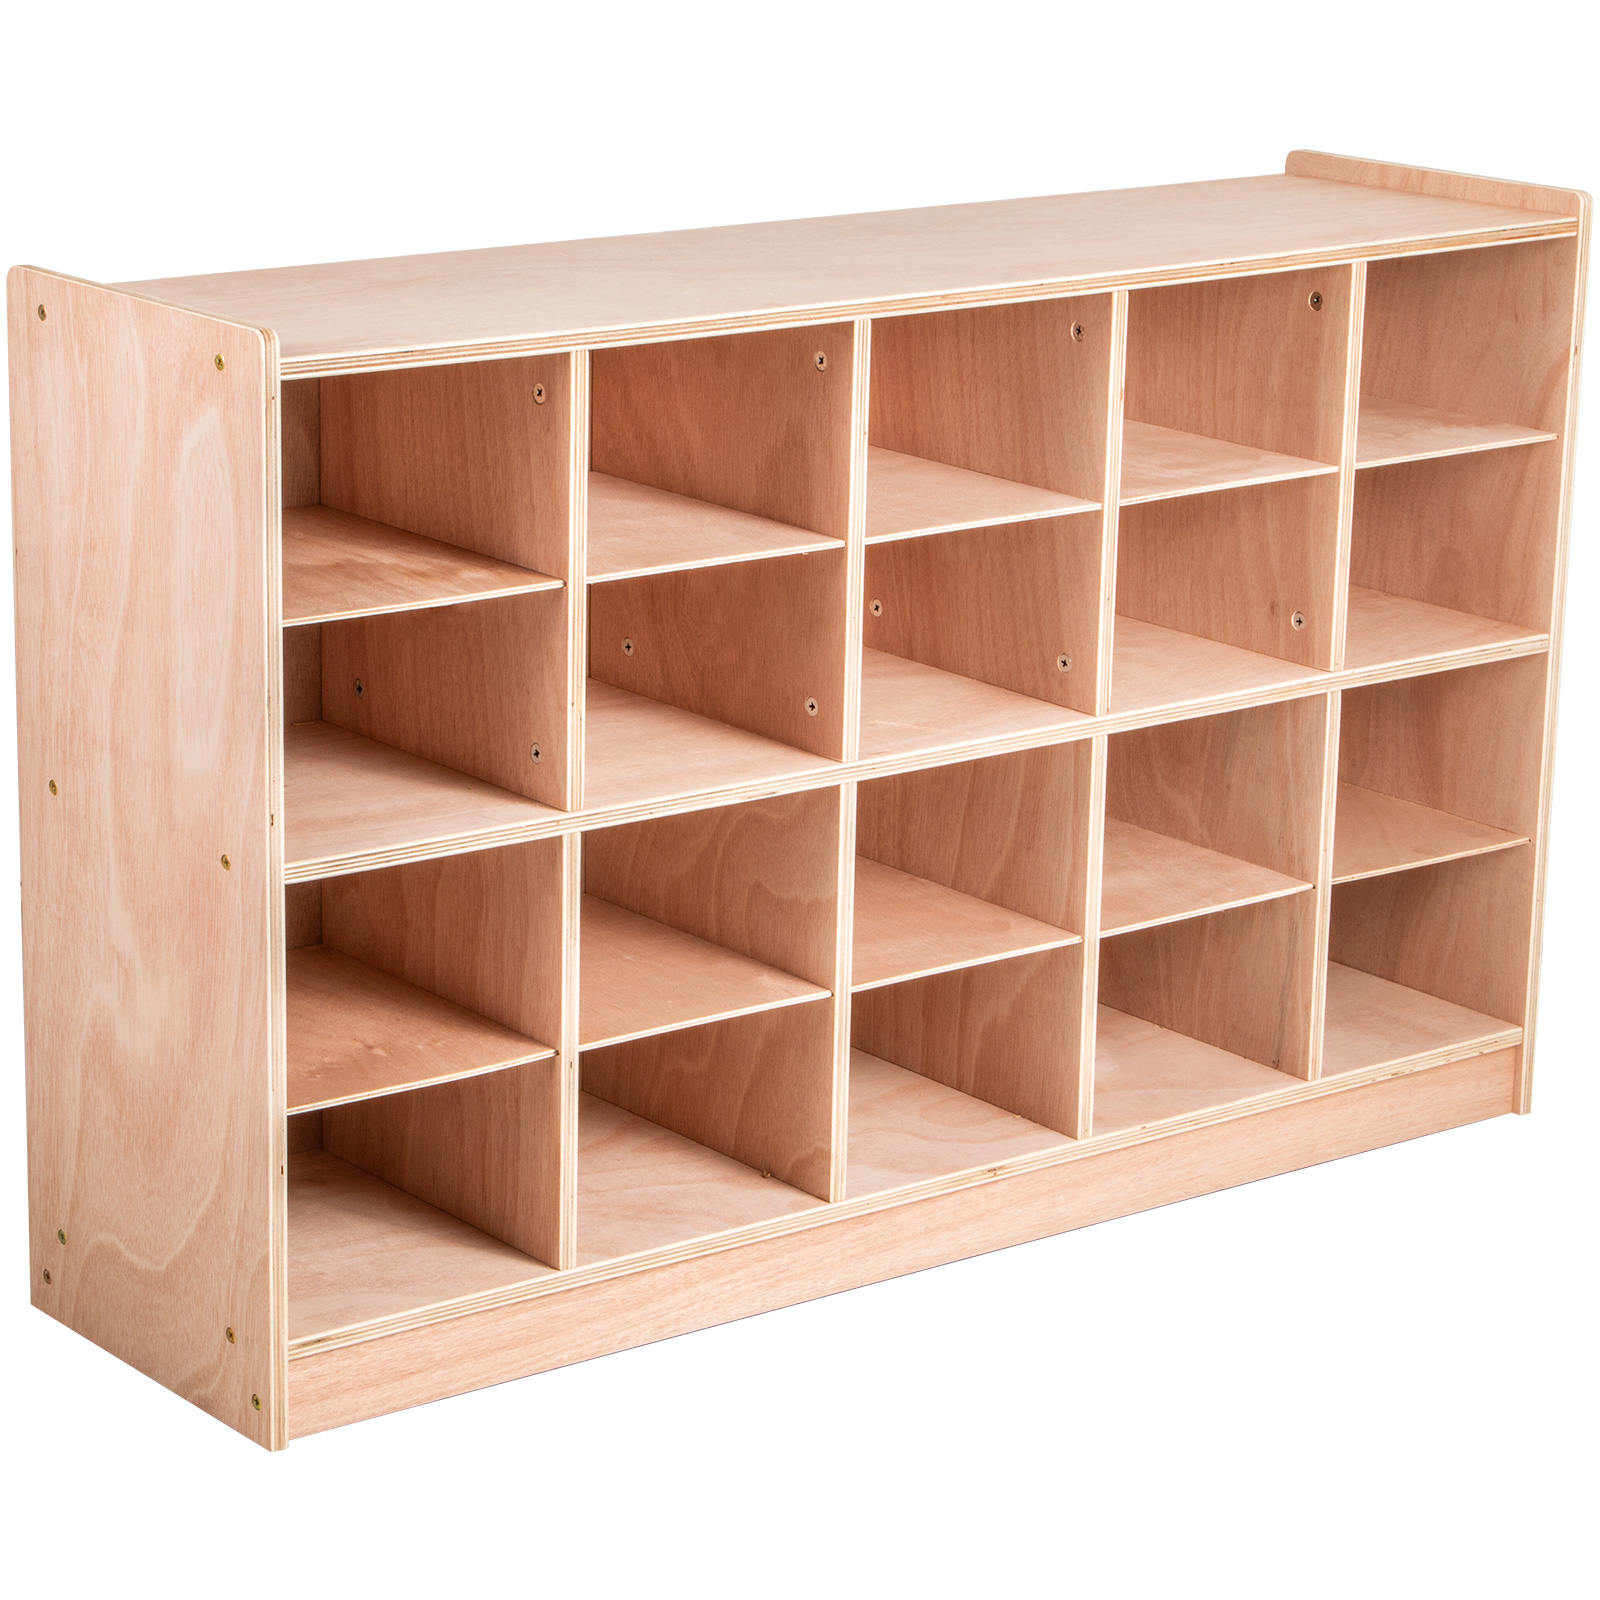 Classroom-Storage-Cabinet-Wooden-Cubby-20-Grids-Organizer-W-Casters-Non-toxic thumbnail 10